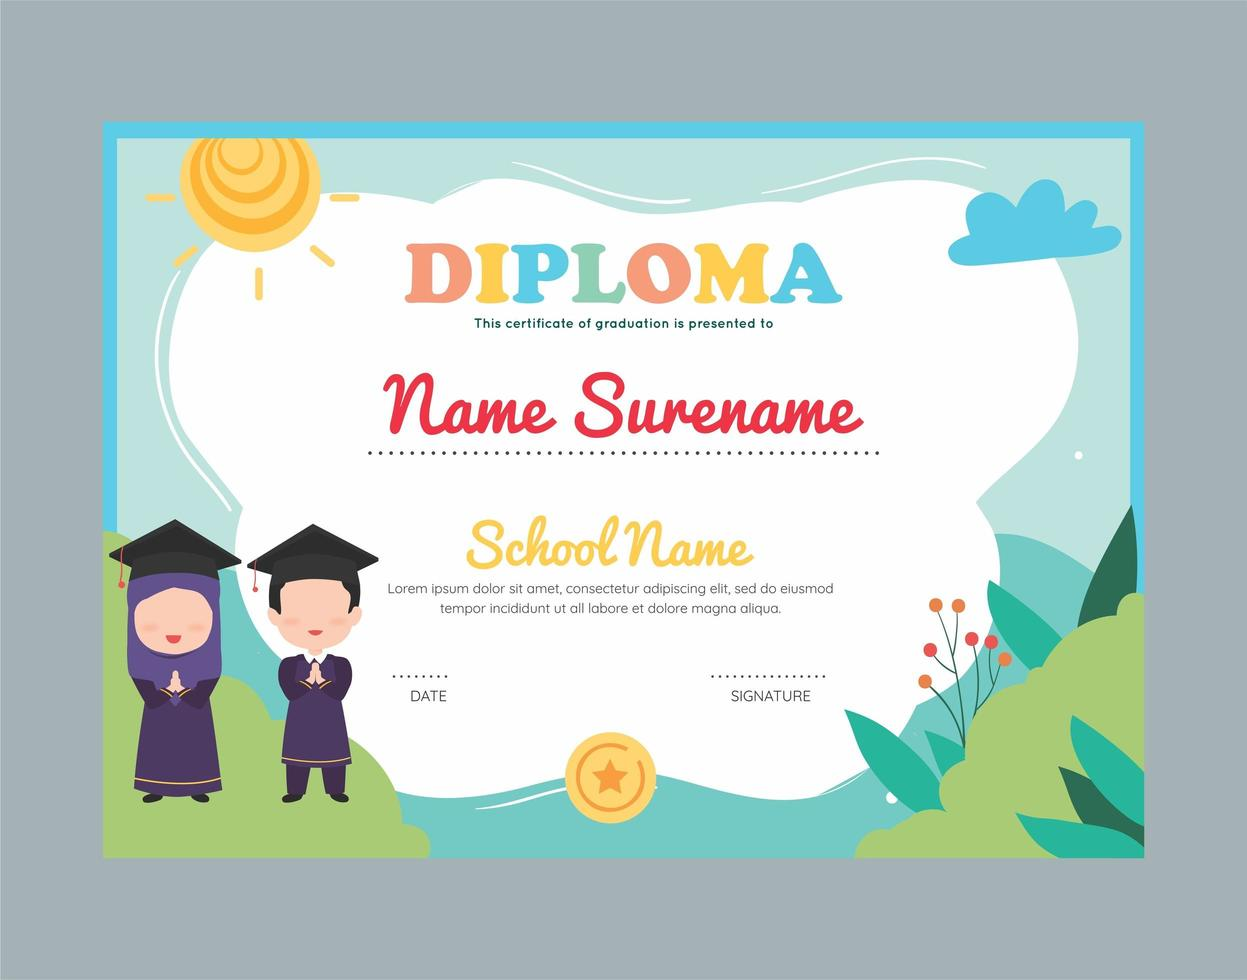 Muslim garden diploma certificate template for kids 21 Vector Intended For Free Kids Certificate Templates